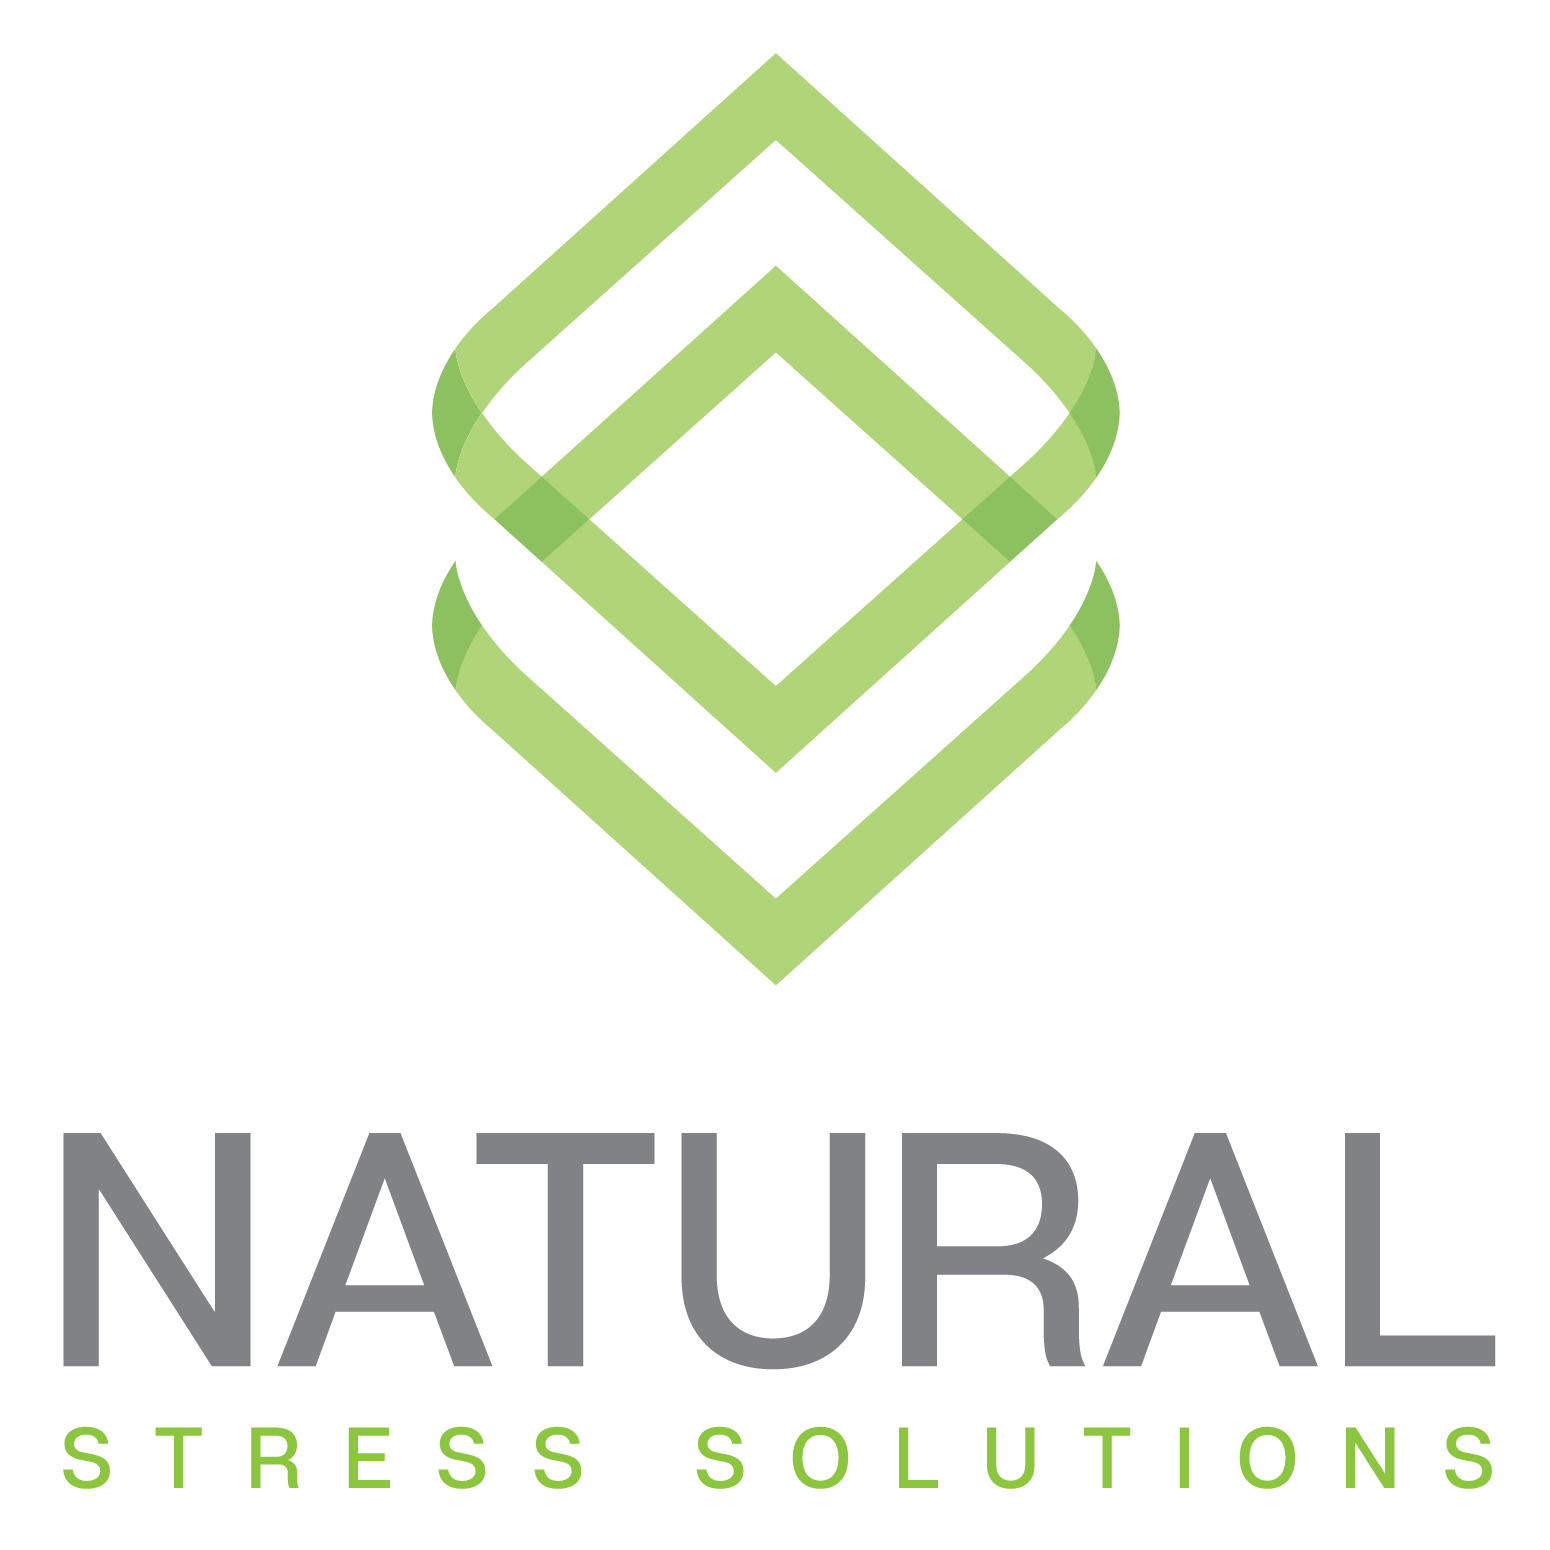 Natural Stress Solutions image 13